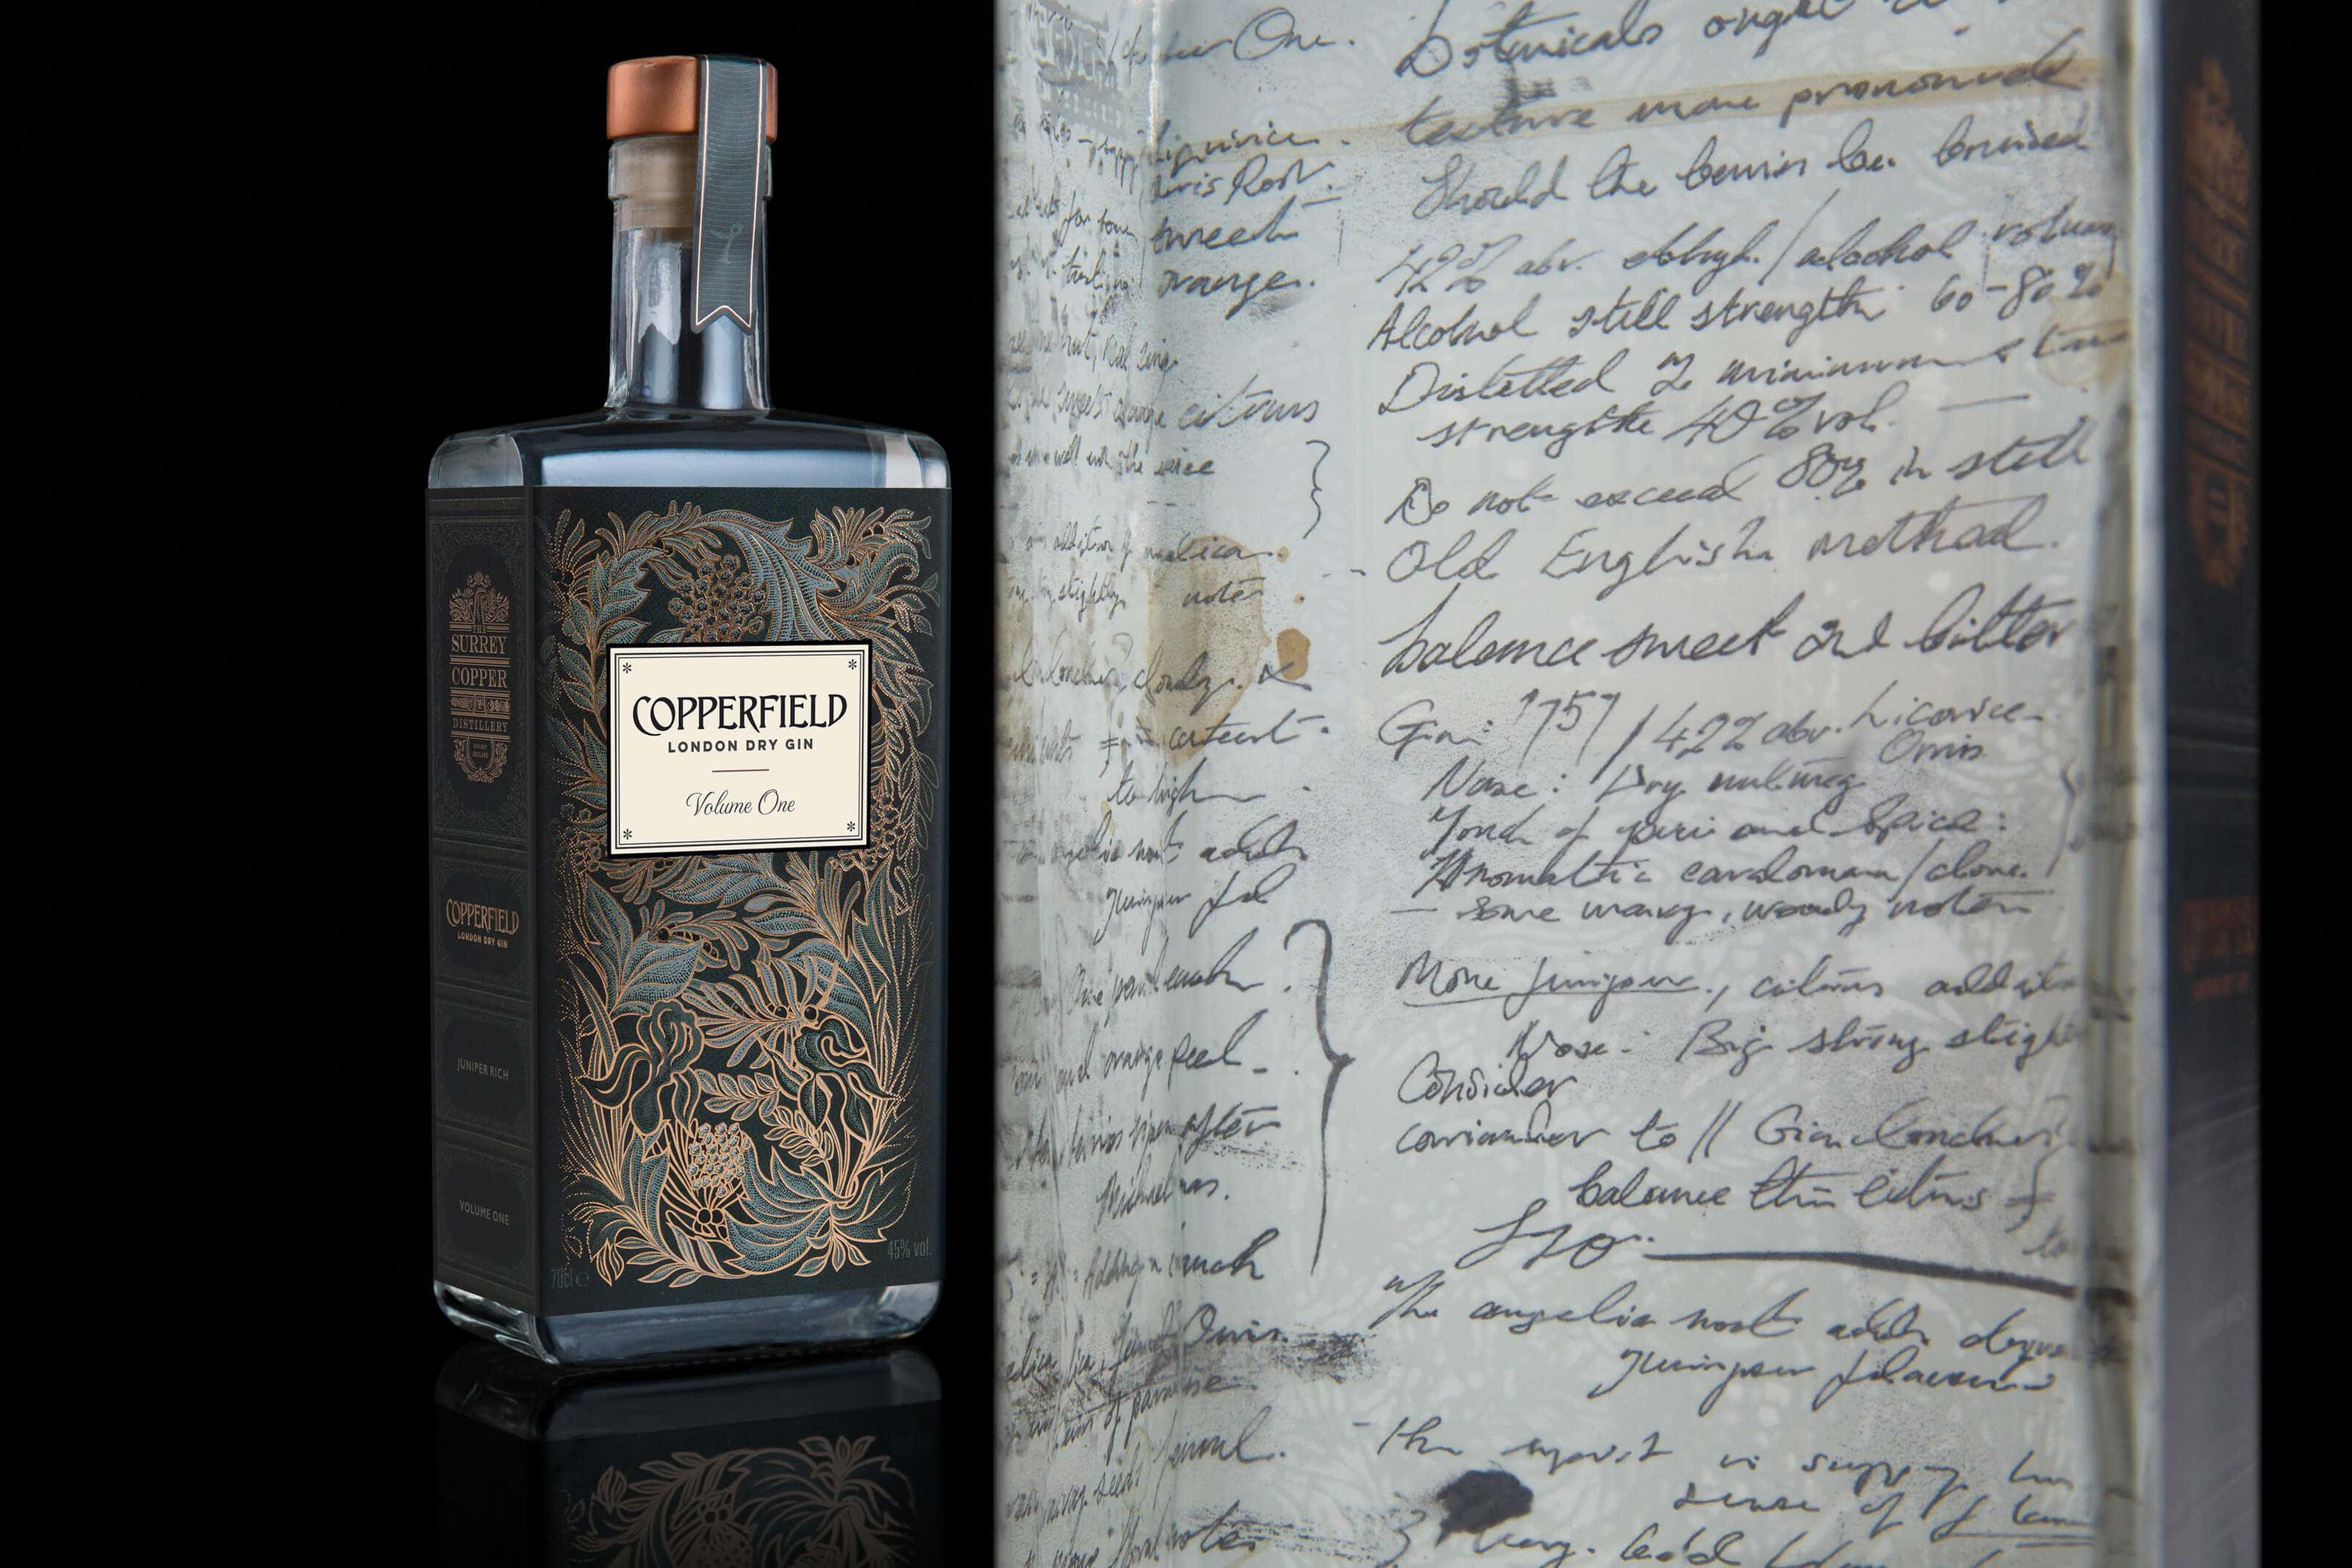 Copperfield sipping gin with notes of distillate on inside label